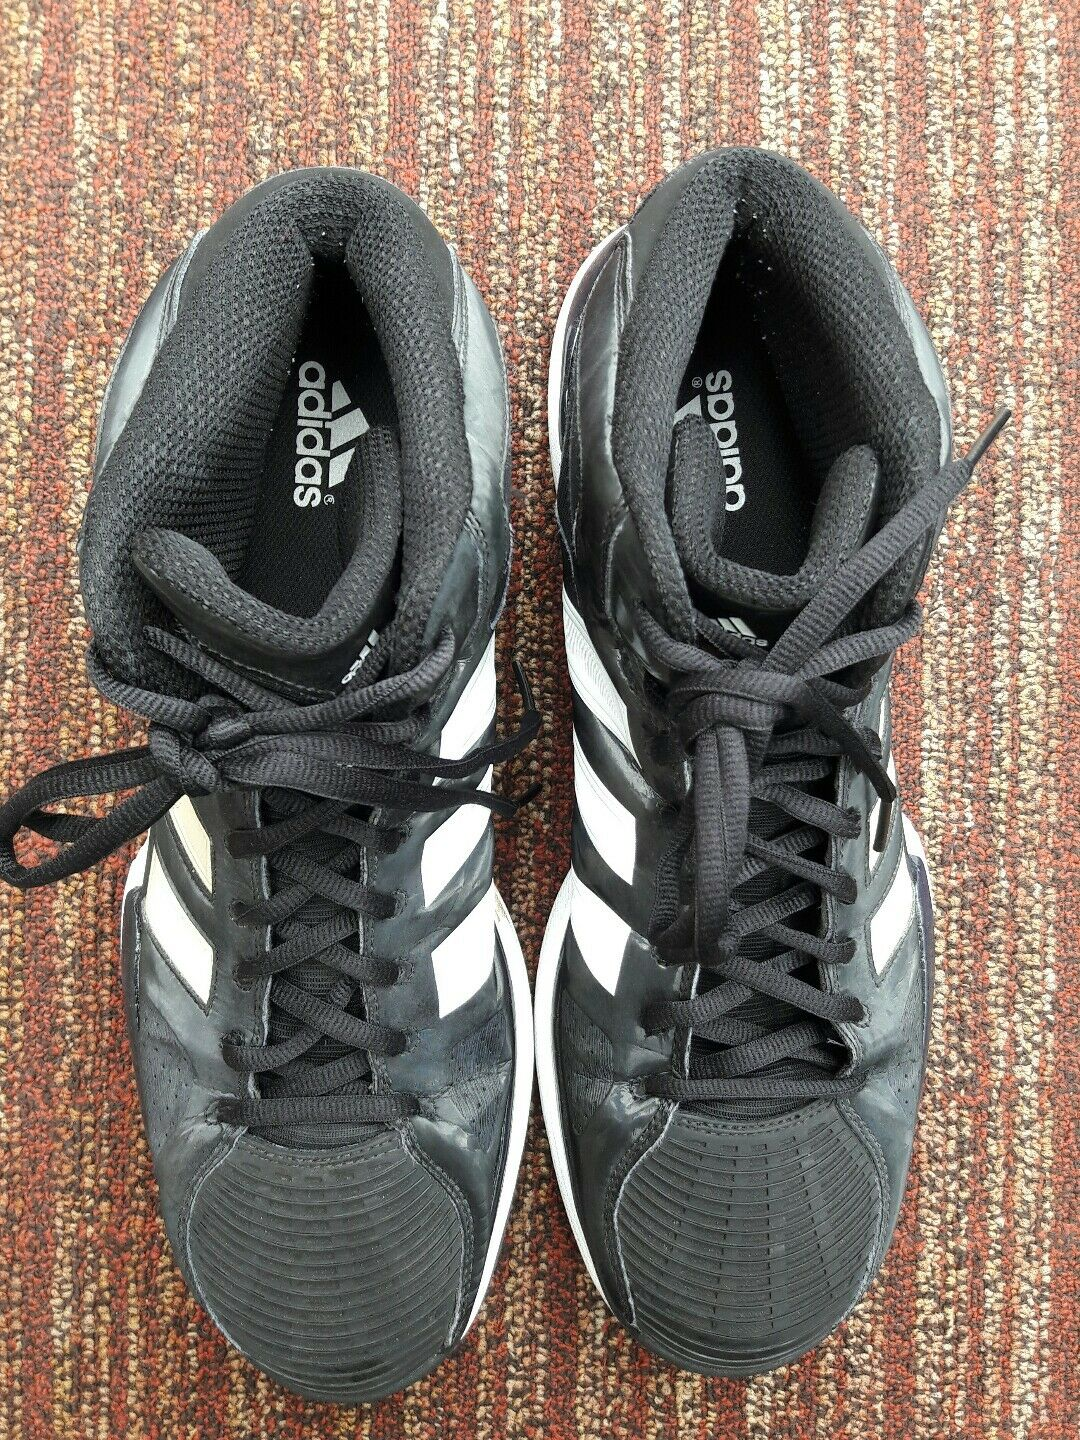 Adidas Pro Model Basketball Shoes G22882, Comfortable best-selling model of the brand